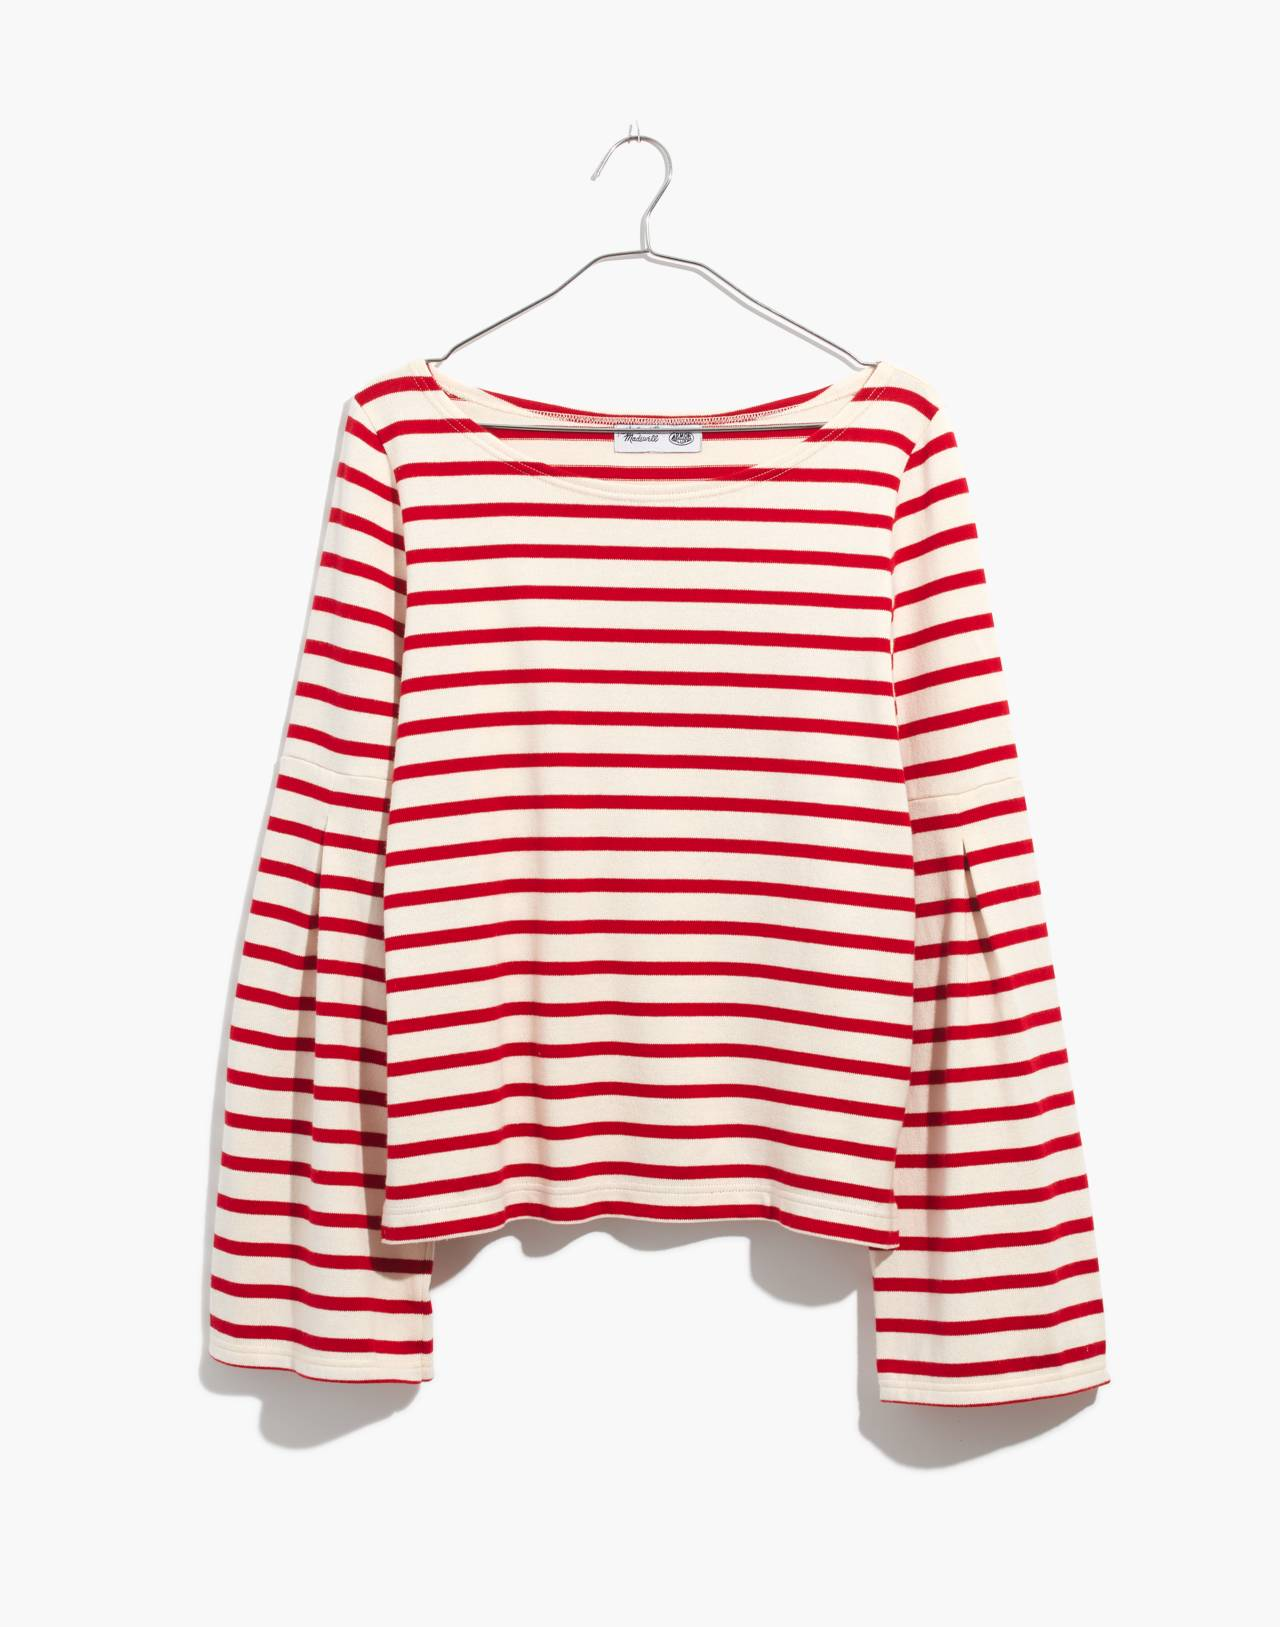 Madewell x Armor-Lux® Flare-Sleeve Striped Top in red creme stripe image 4